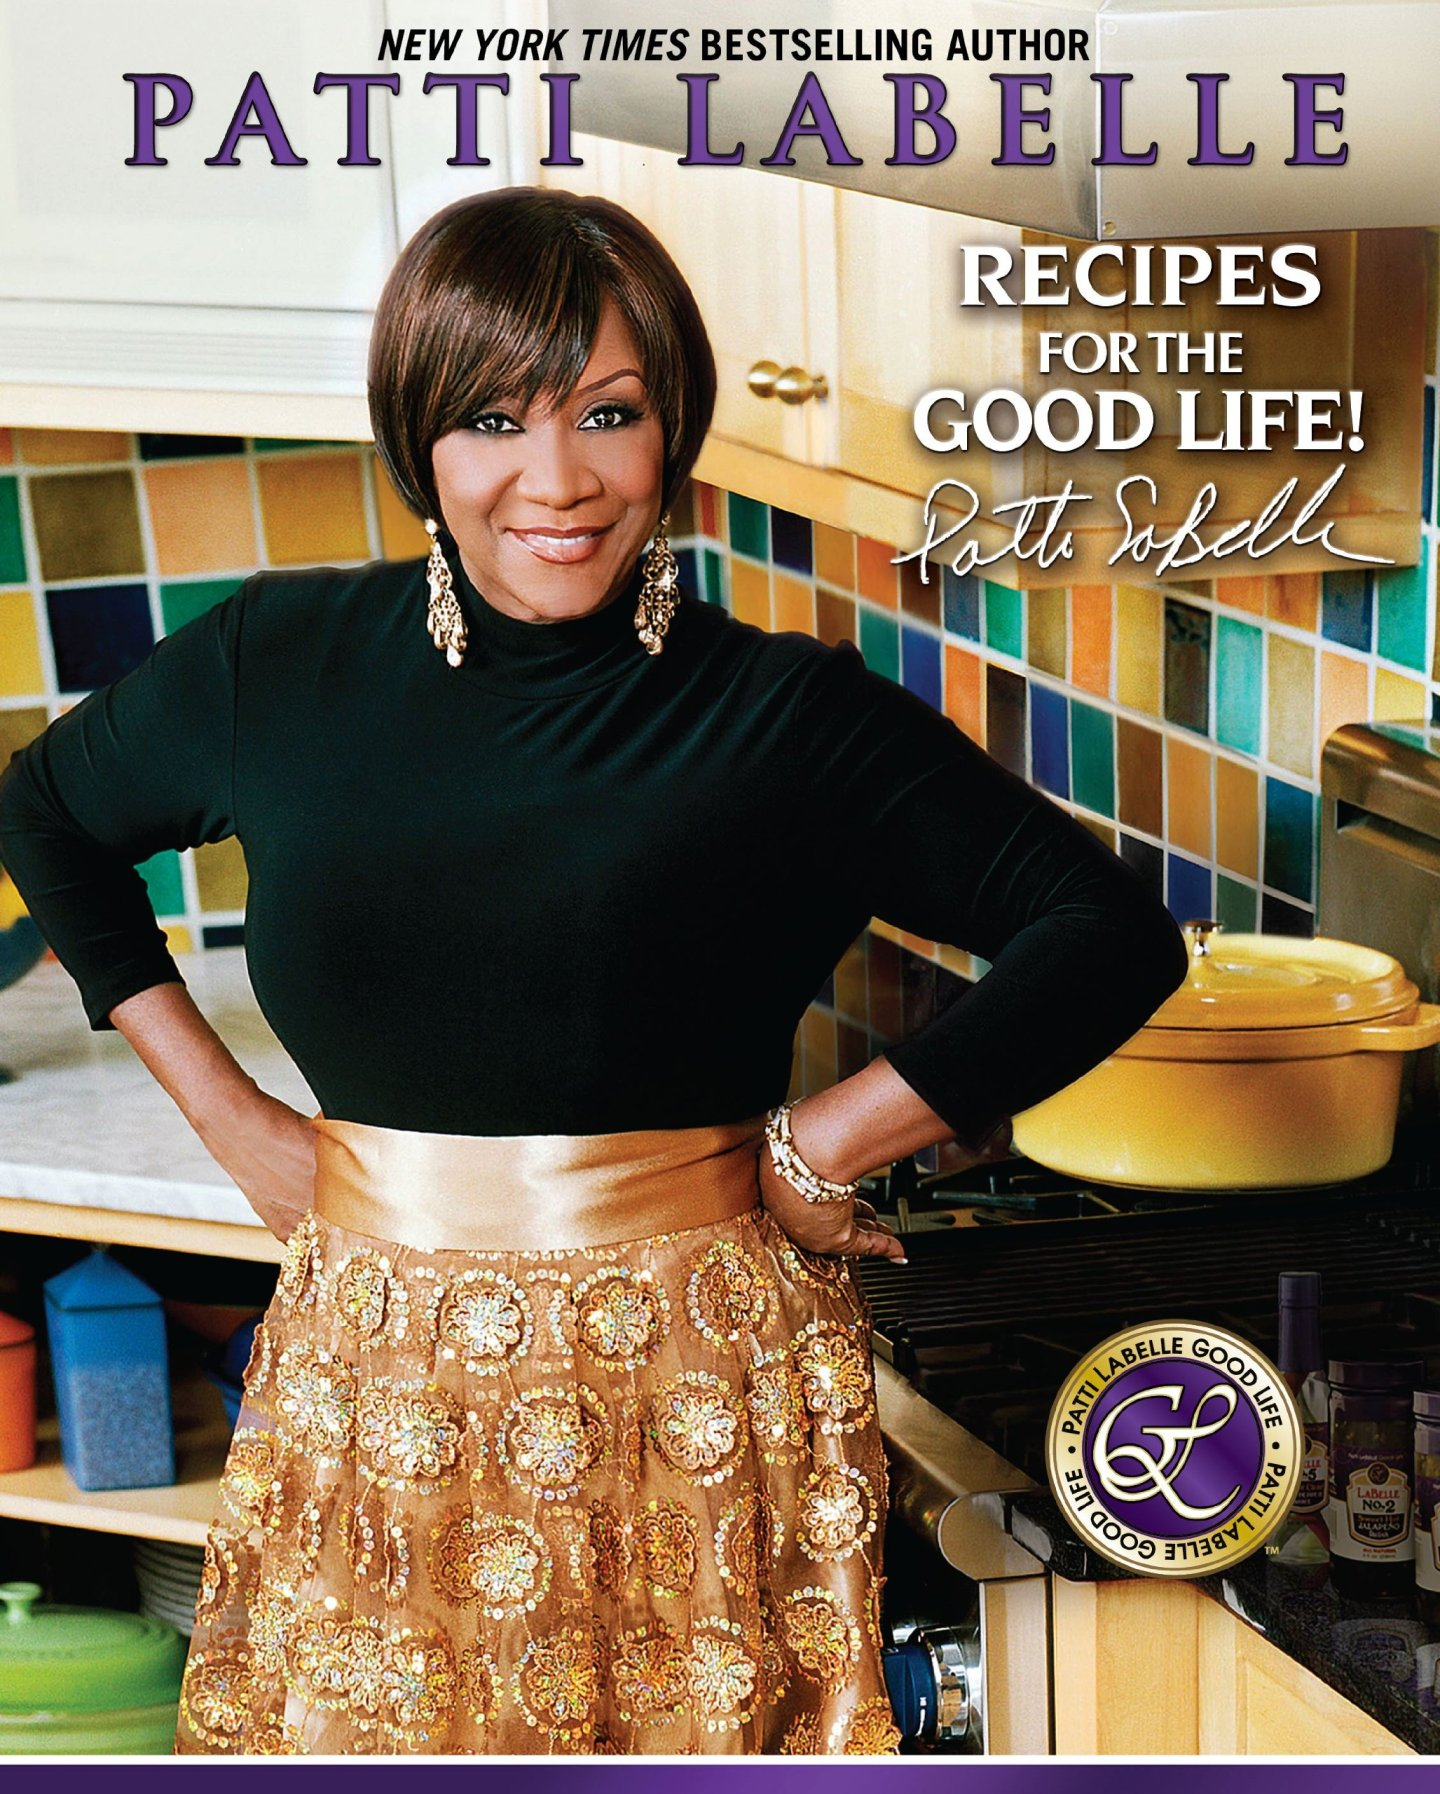 91IjgxhqQWL-1440x1794 Cookbooks by Patti LaBelle You Must Try